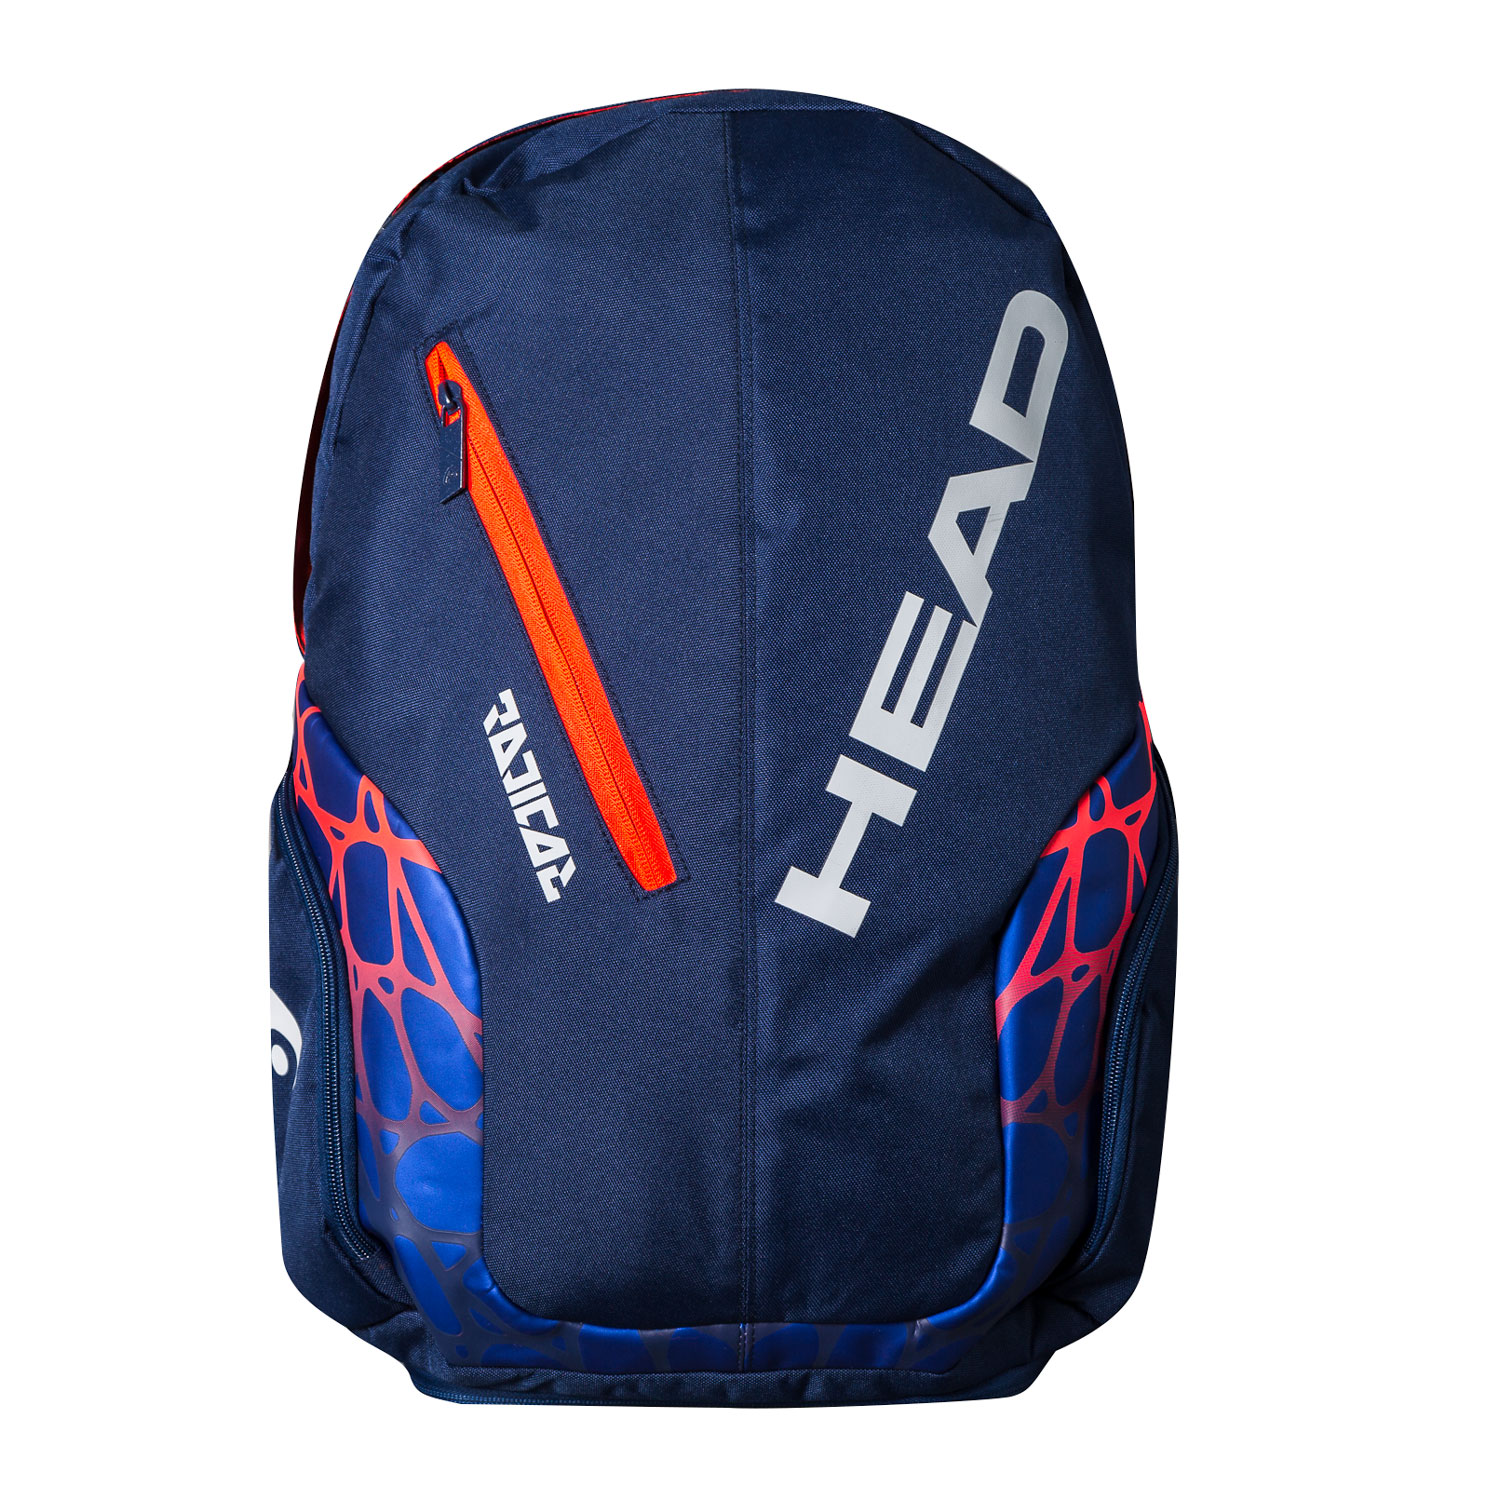 15395d0354 Rebel Sports Adidas Bags